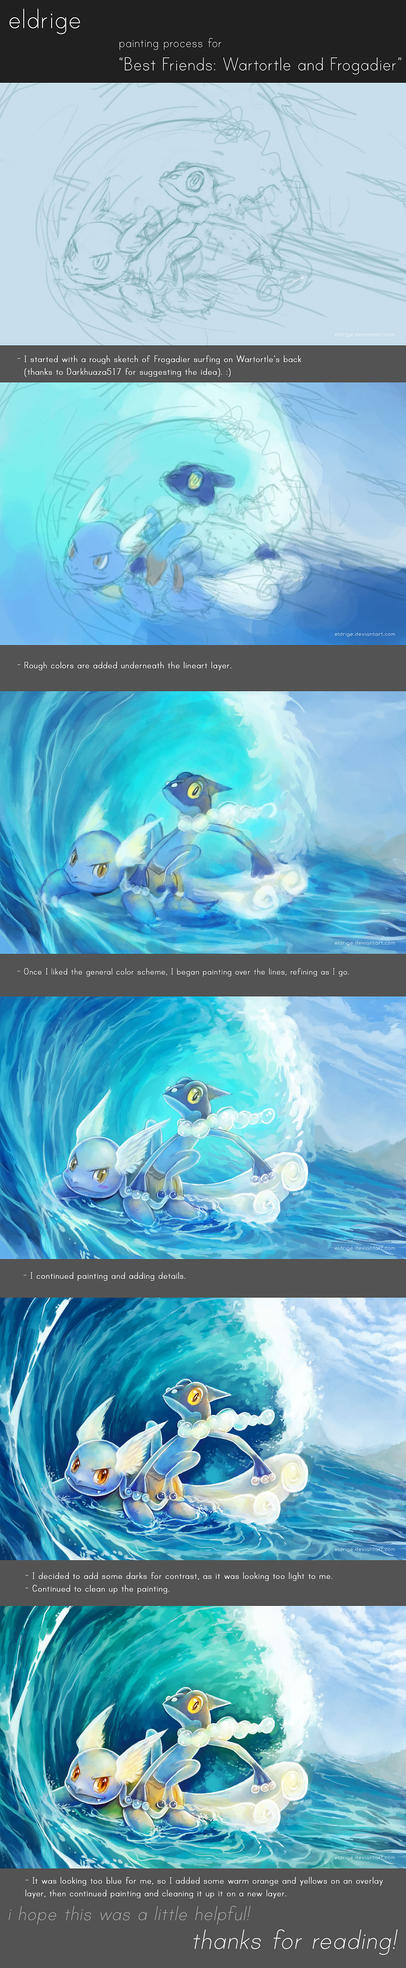 Painting Process for 'BF: Wartortle and Frogadier' by eldrige